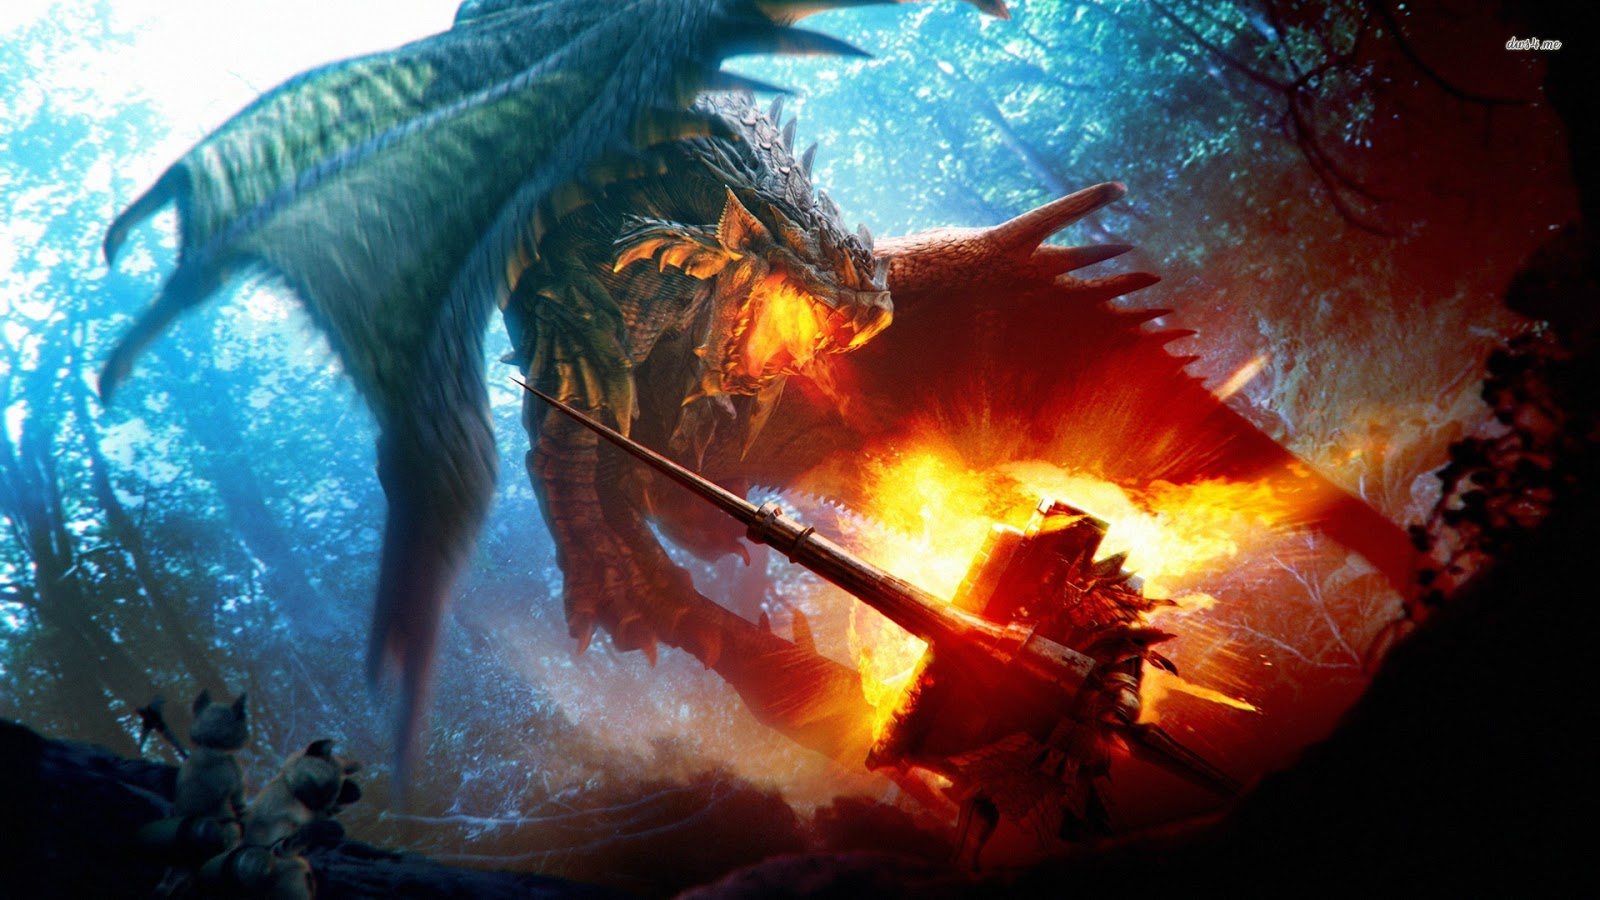 Dragon Battle Wallpapers Desktop Wallpapers 1600x900